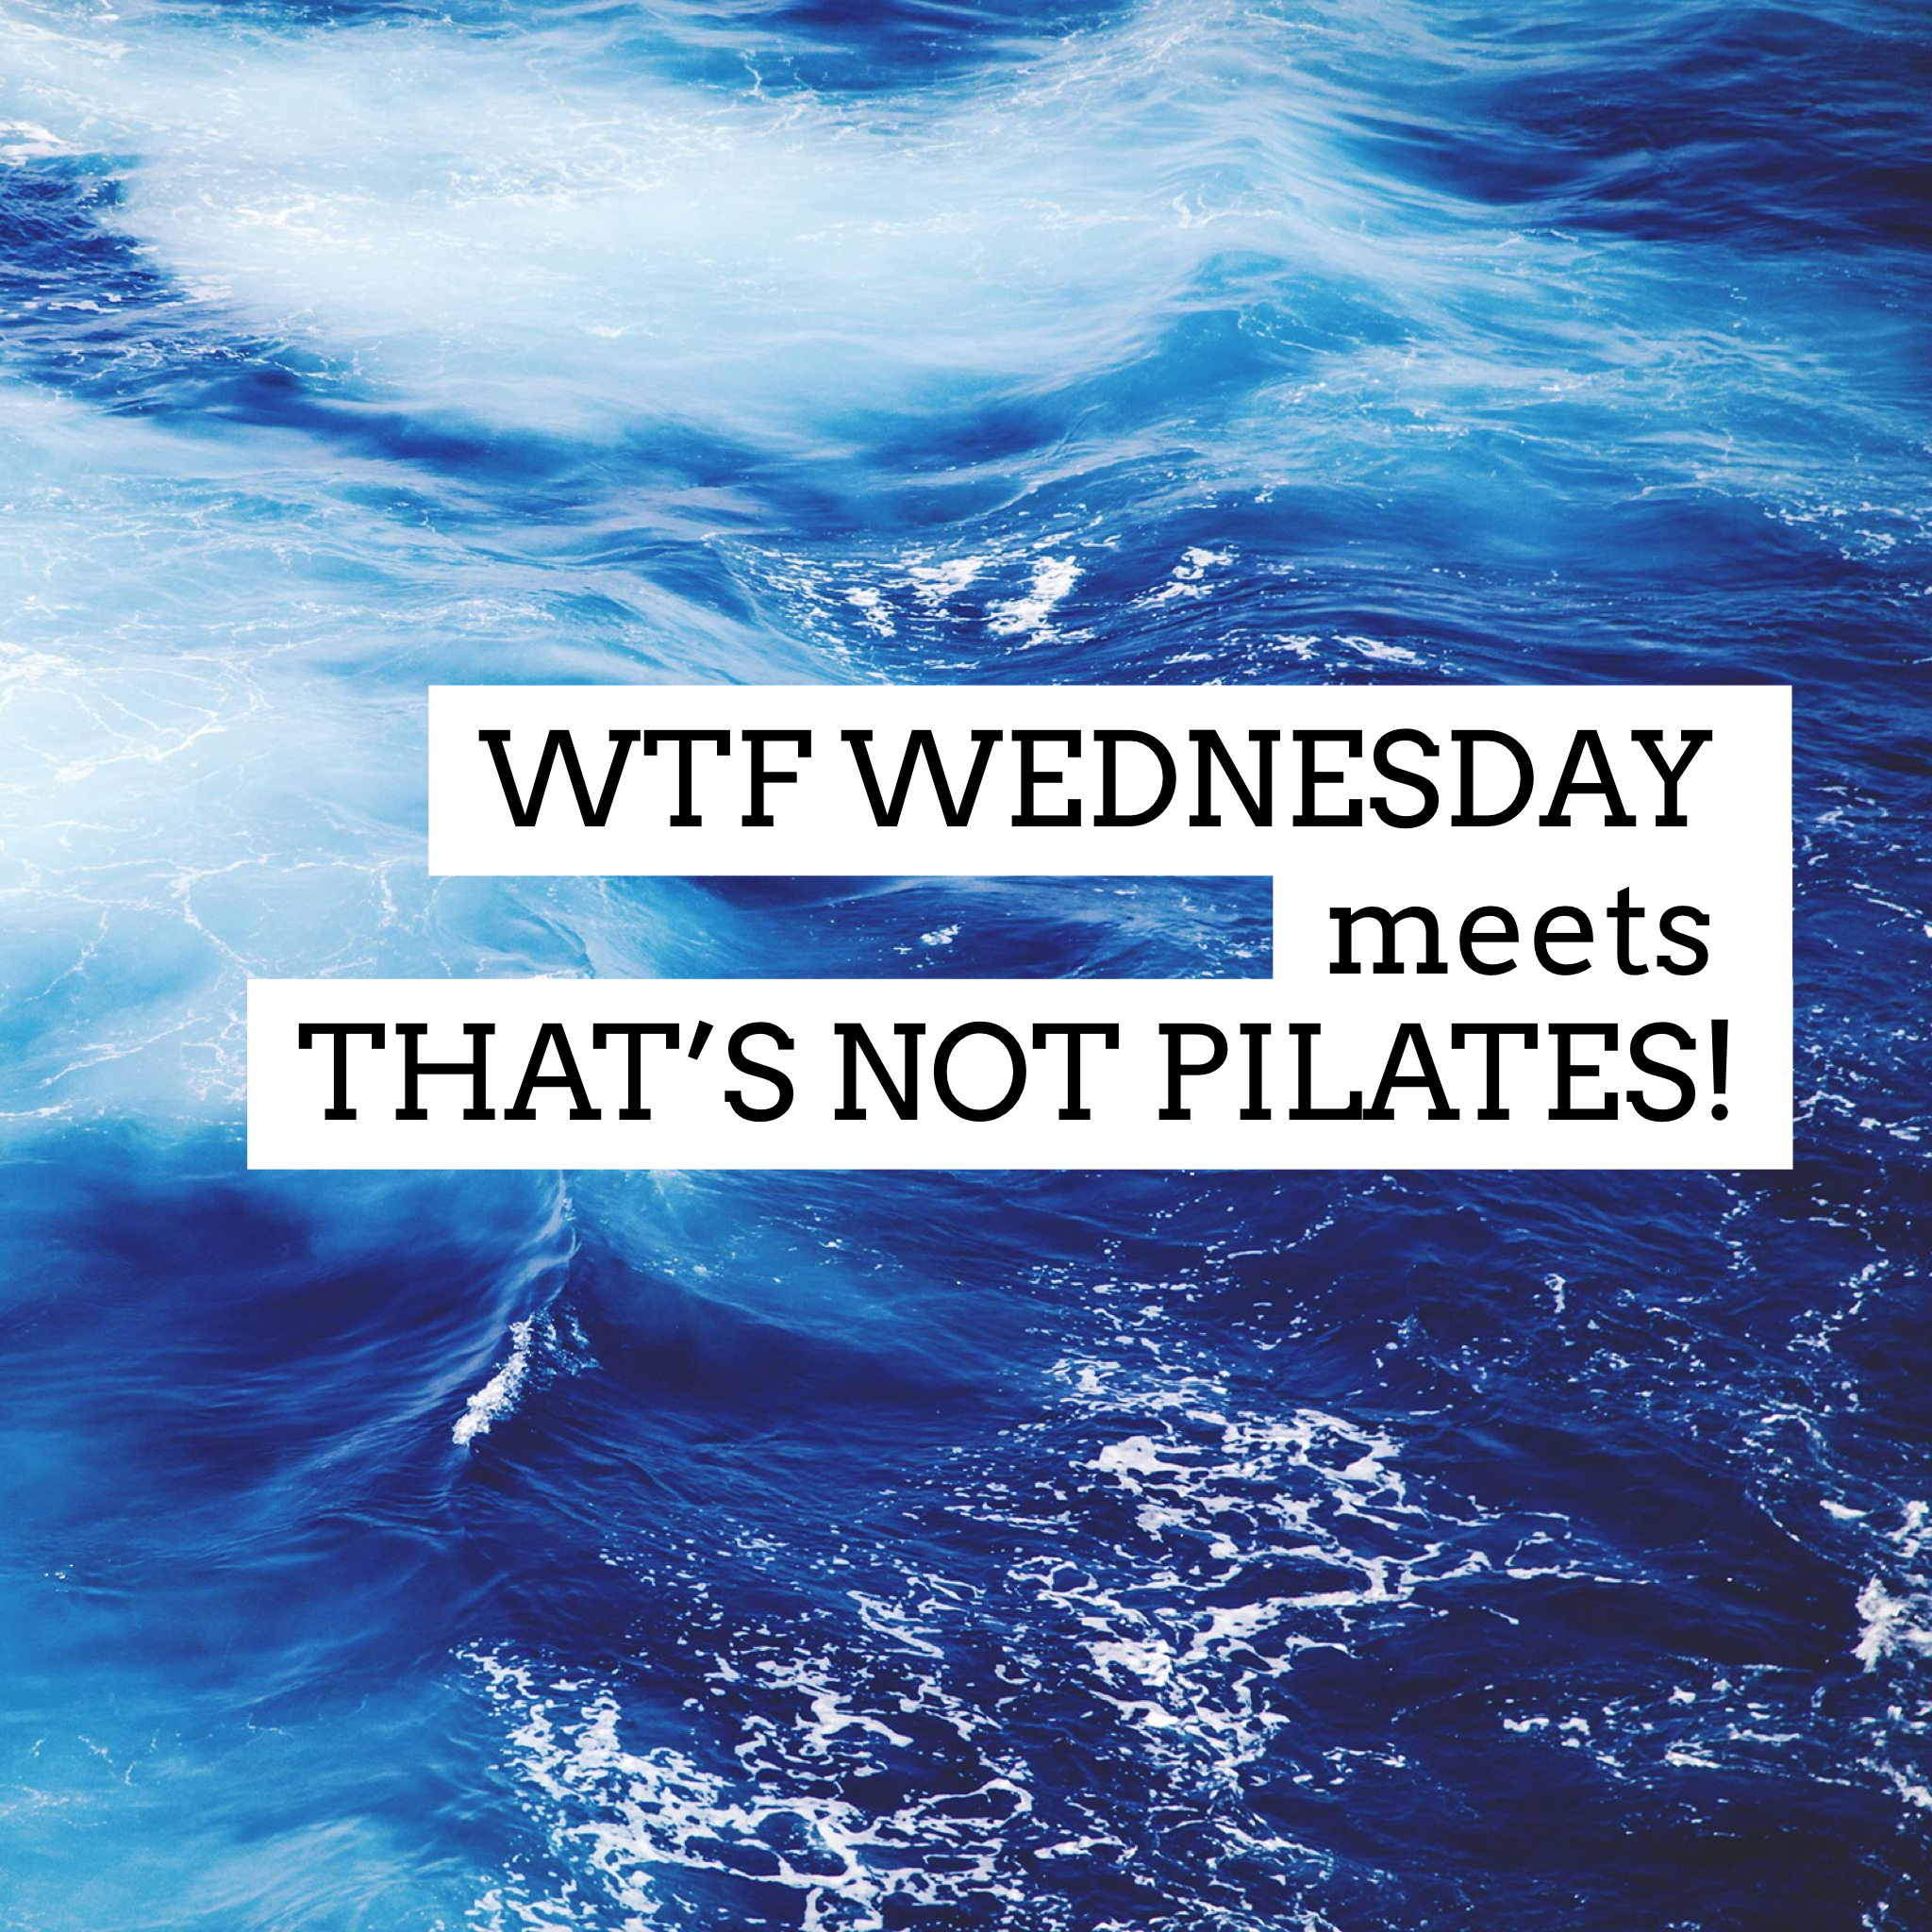 File this one under: That's Not Pilates and WTF. - What the hell is hot Pilates!? Why oh whyyyy... you want to step up your practice? Switch up your spring resistance or hold positions for longer instead of turning up the thermostats! *Cue eye roll*